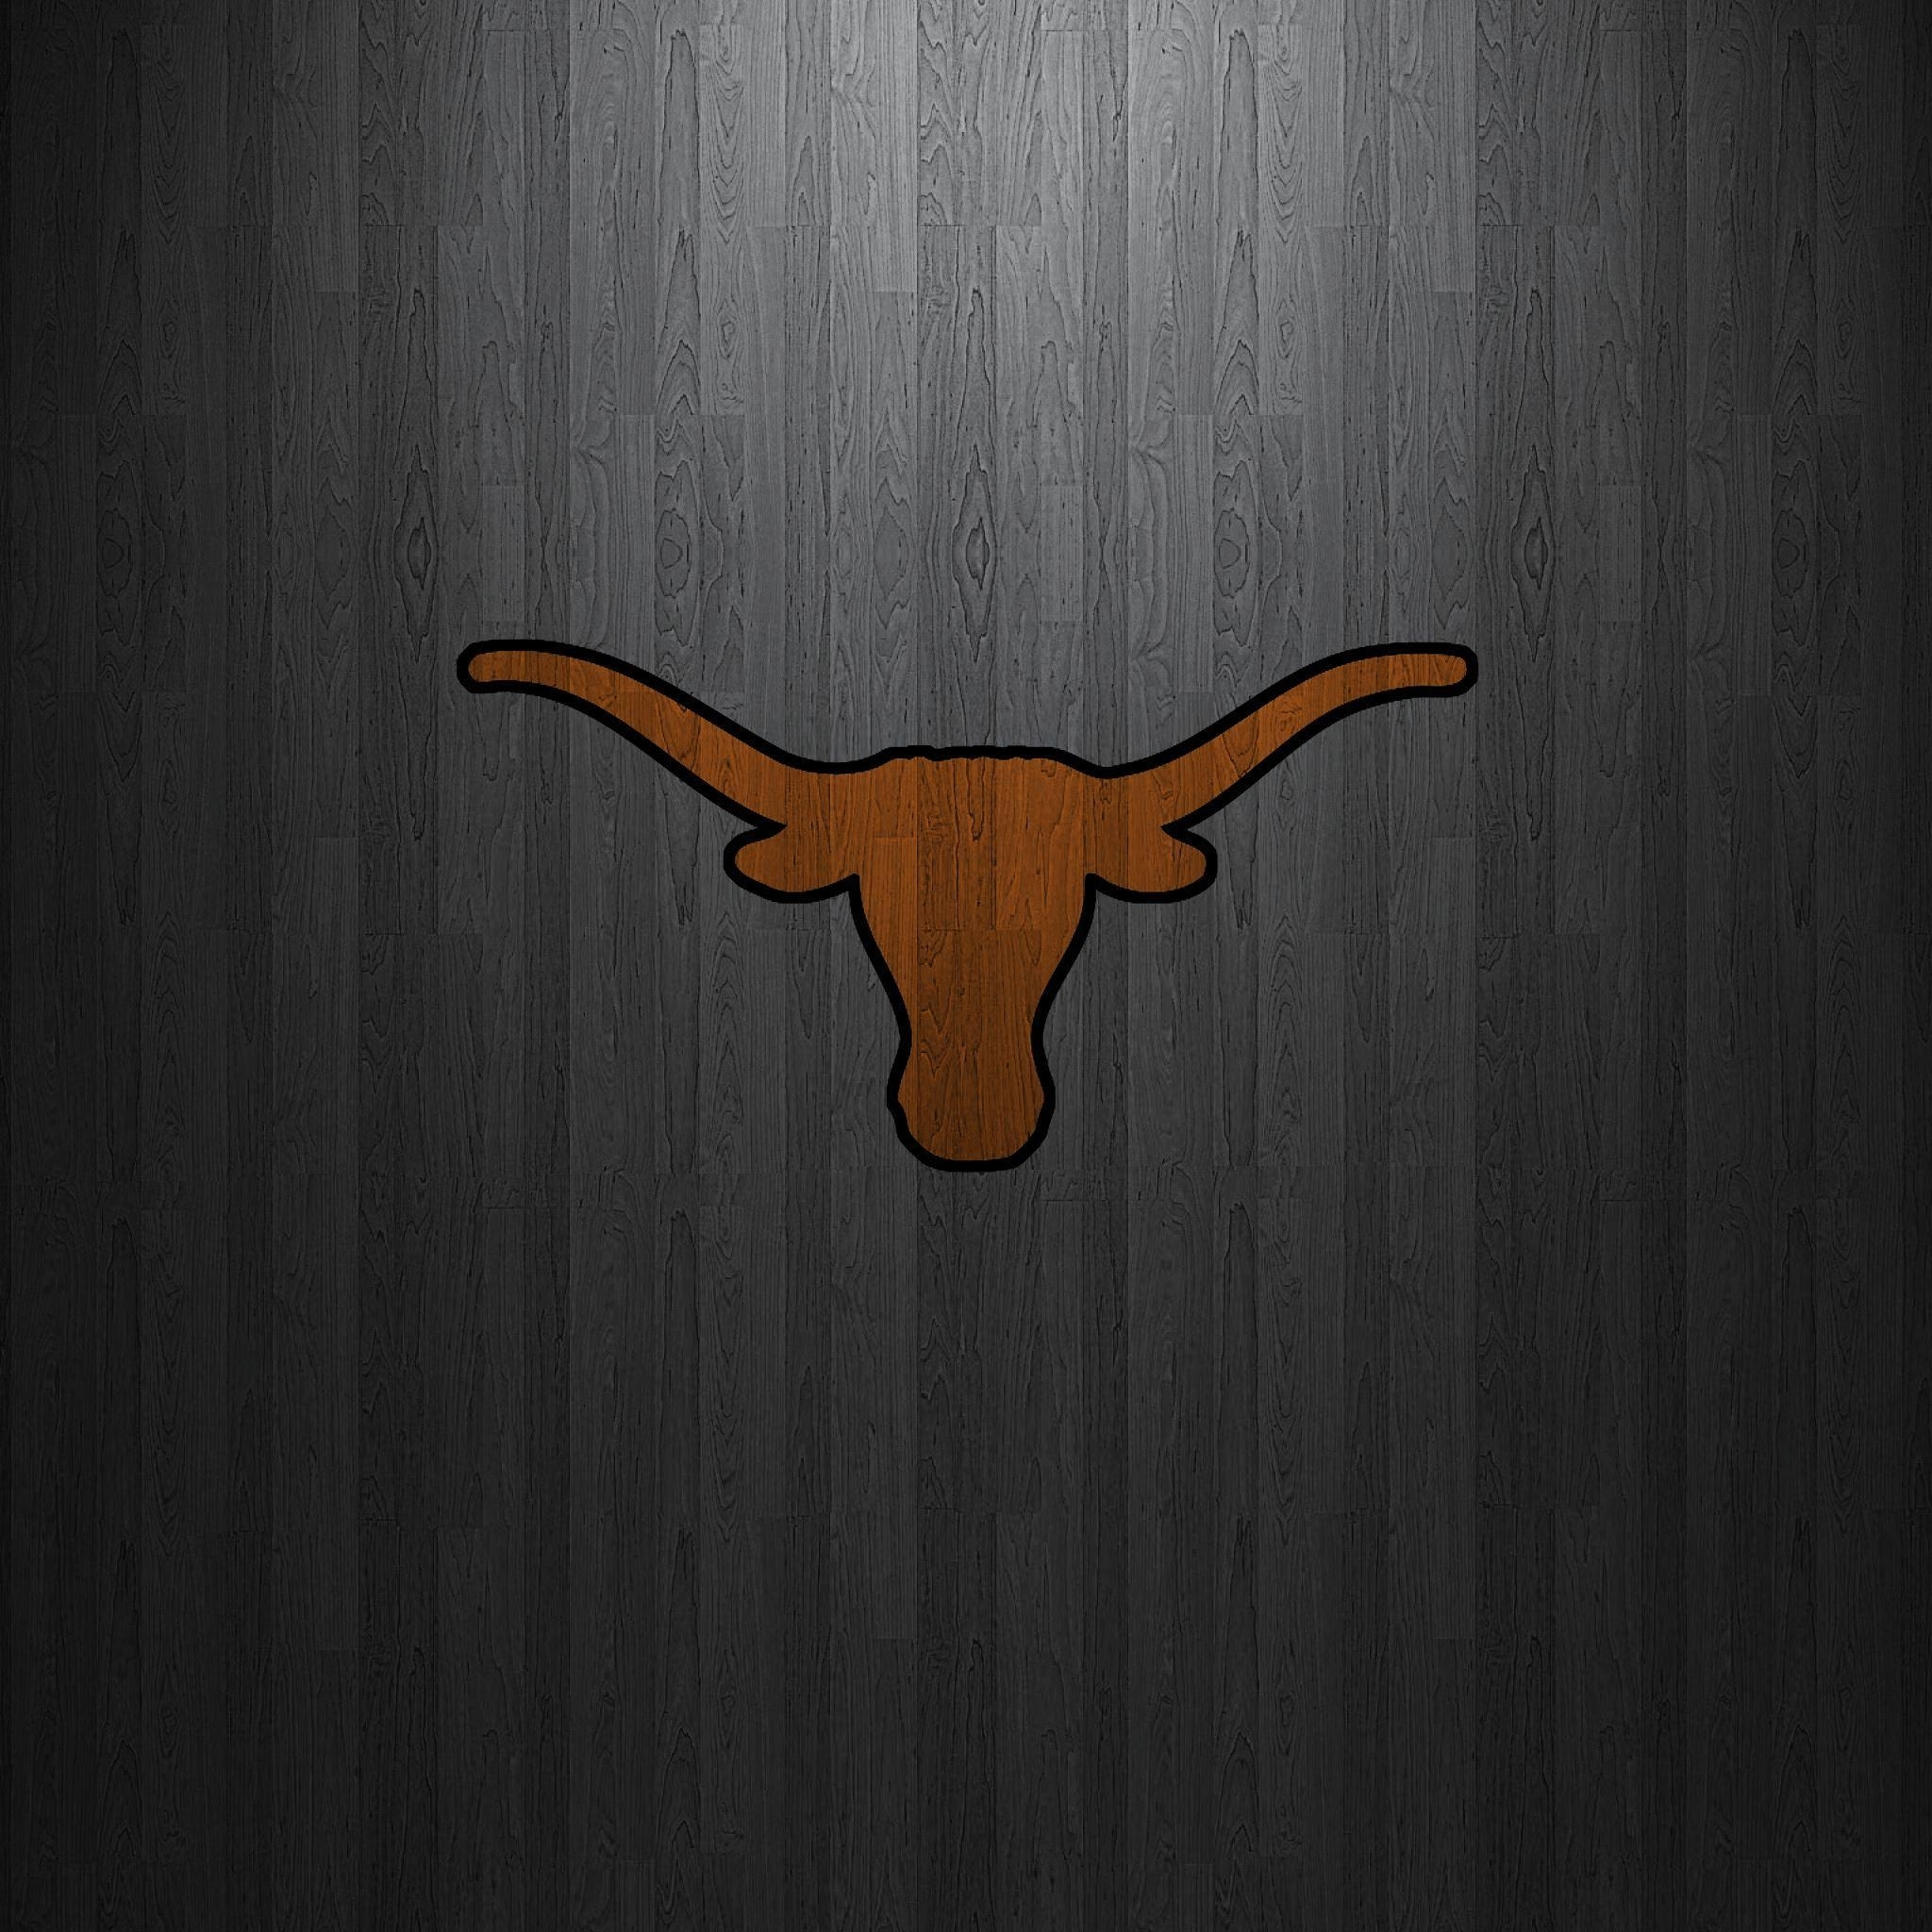 10 New Texas Longhorns Screen Savers FULL HD 1920×1080 For PC Desktop